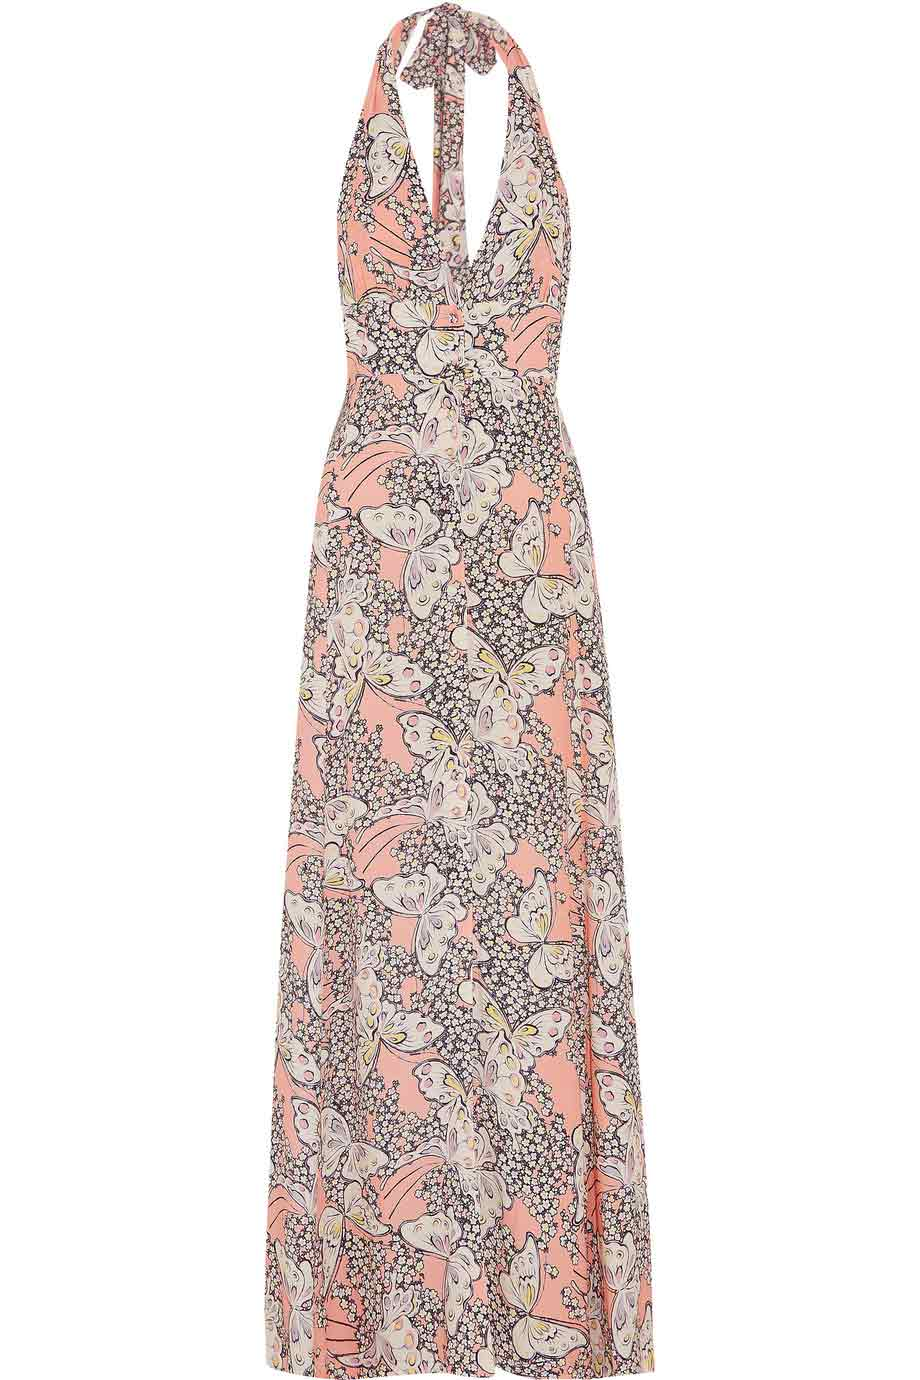 Paul & Joe Pink Multi Floral + Butterfly Print Halter Maxi Dress / Sz 38-Style Therapy